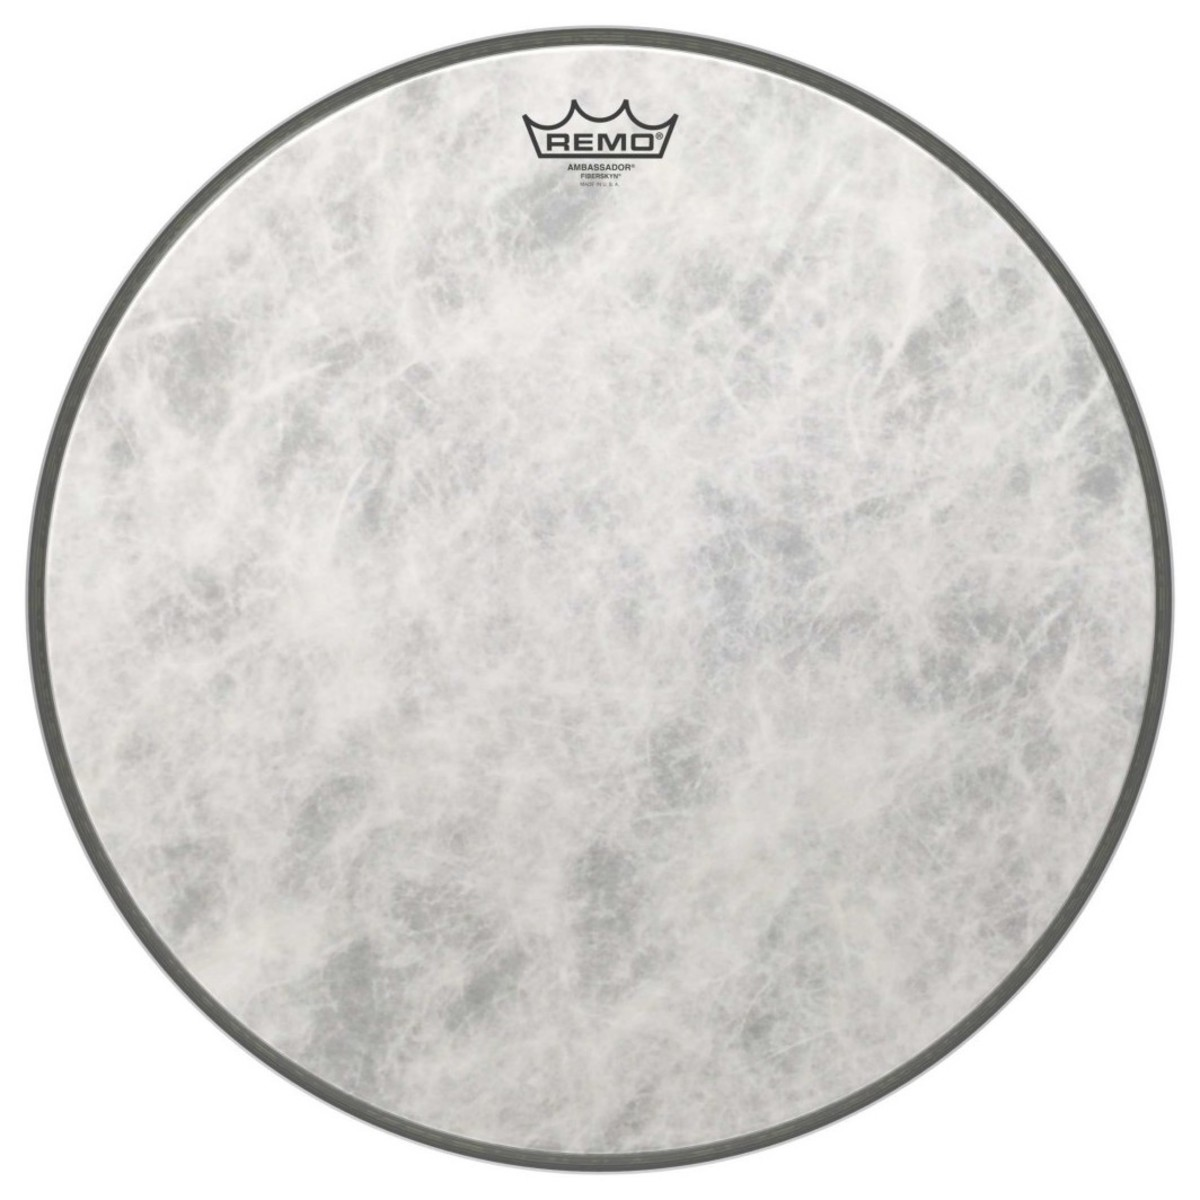 Click to view product details and reviews for Remo Ambassador Fiberskyn 3 22 Bass Drum Head.